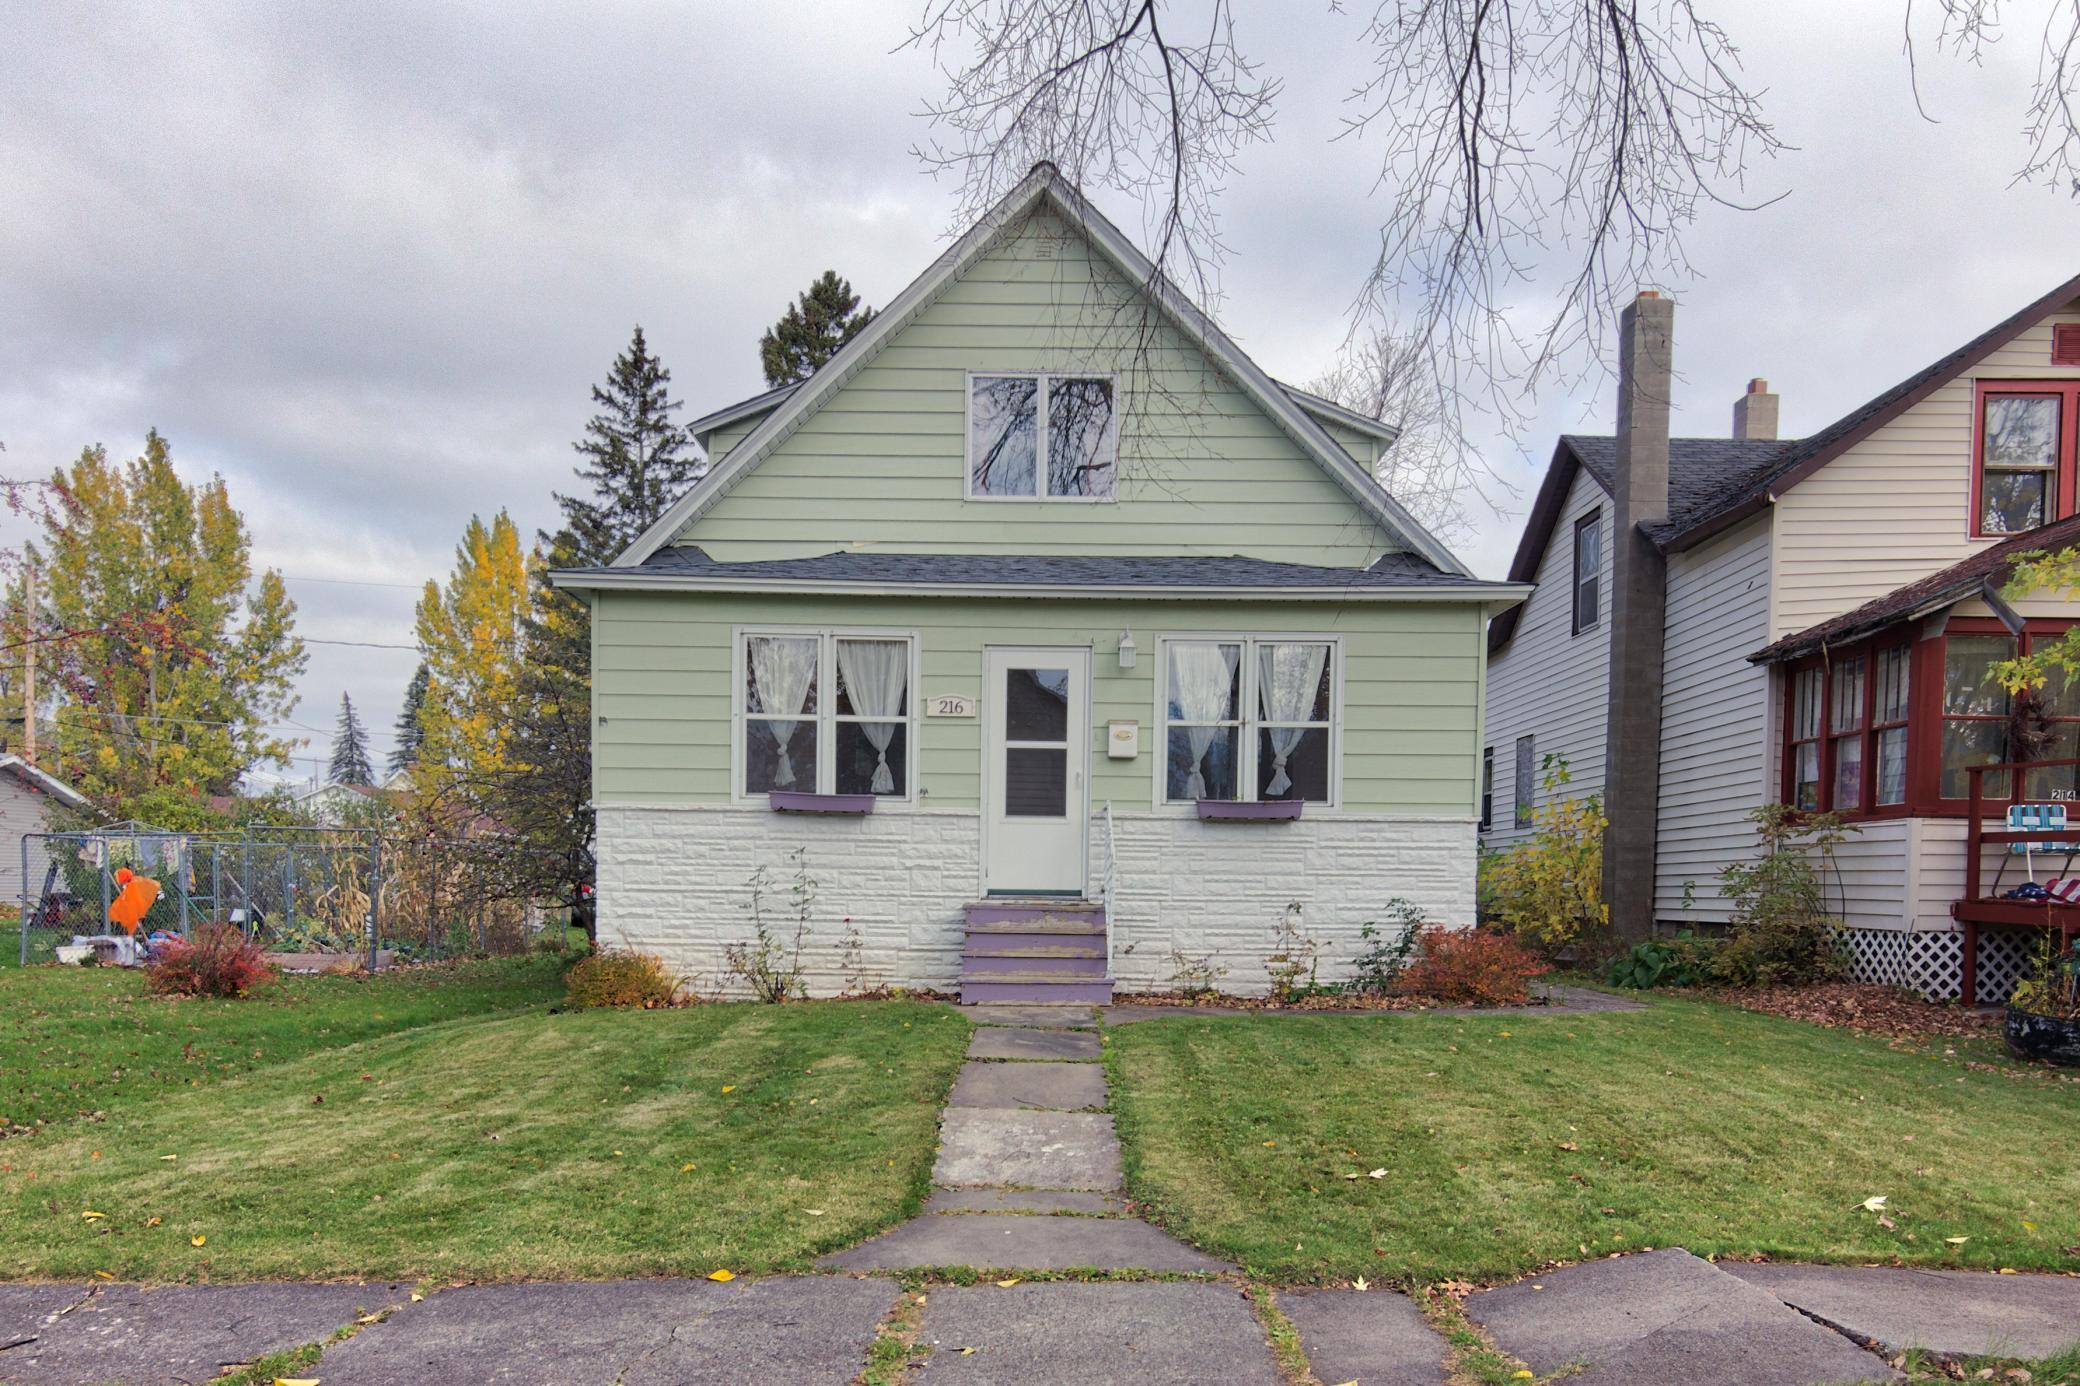 216 W 1st Avenue N Property Photo - Aurora, MN real estate listing